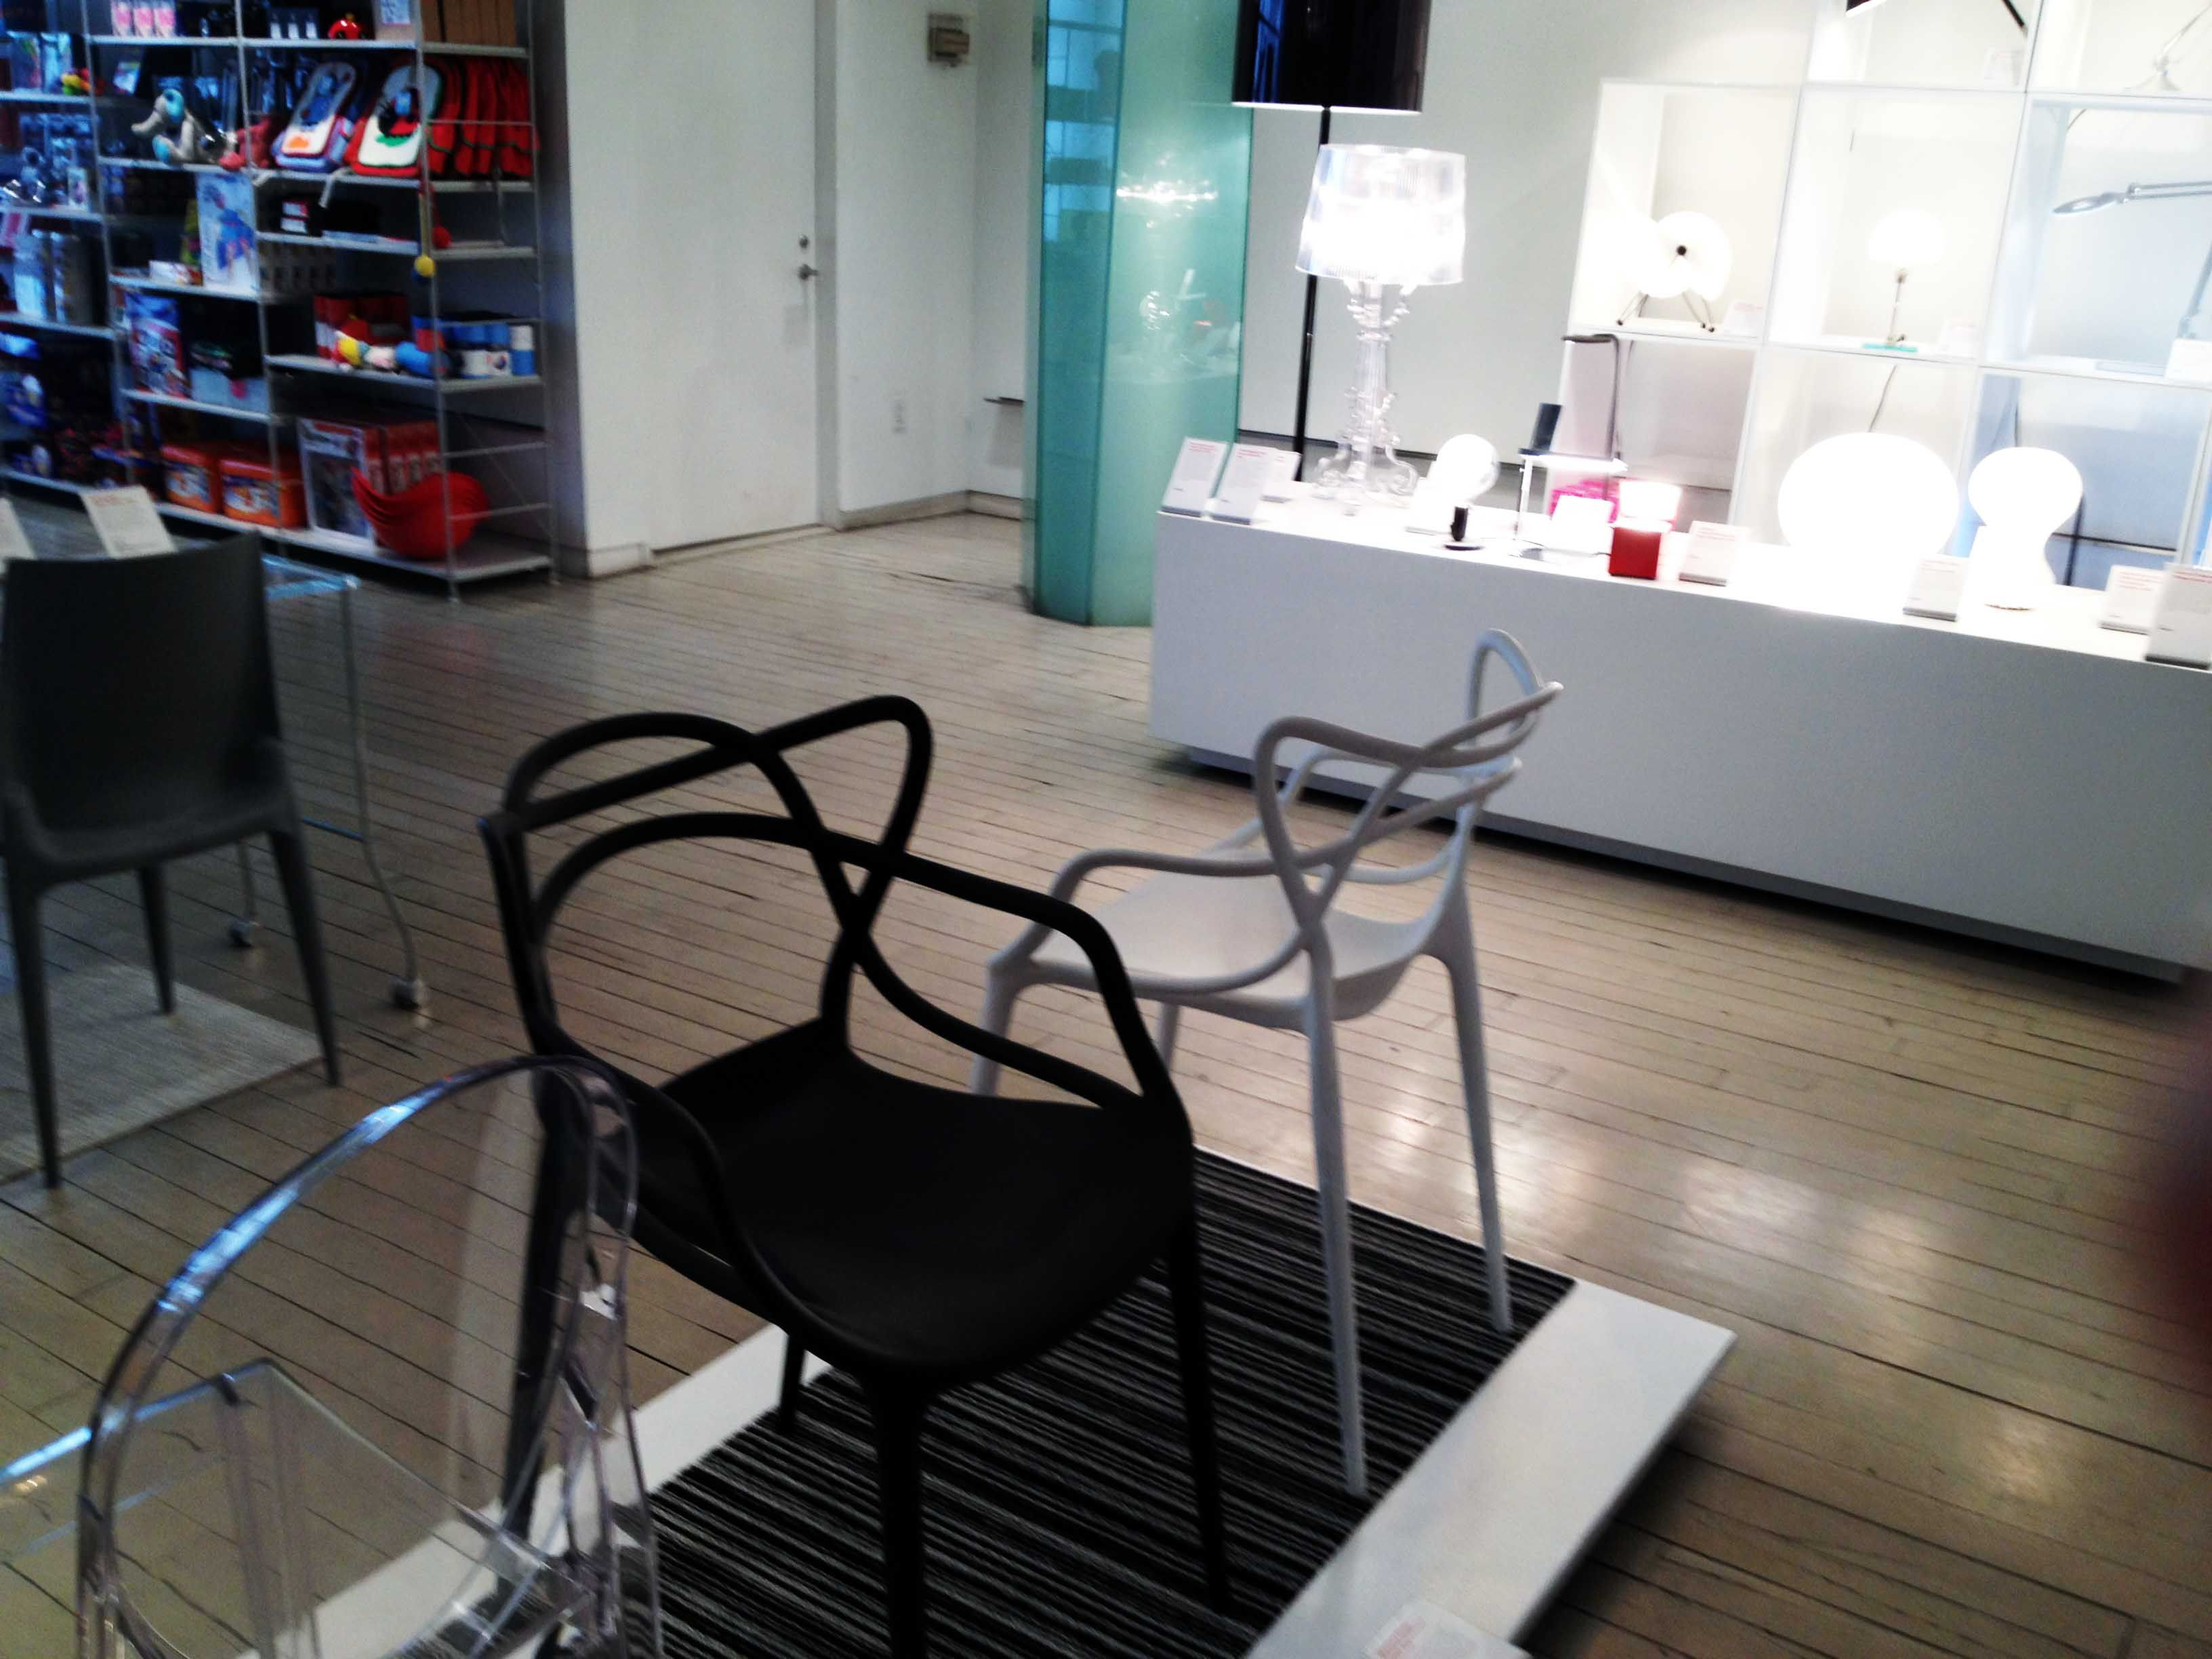 kartell masters chairs at the moma store in nyc we also have them  - kartell masters chairs at the moma store in nyc we also have them at oikos